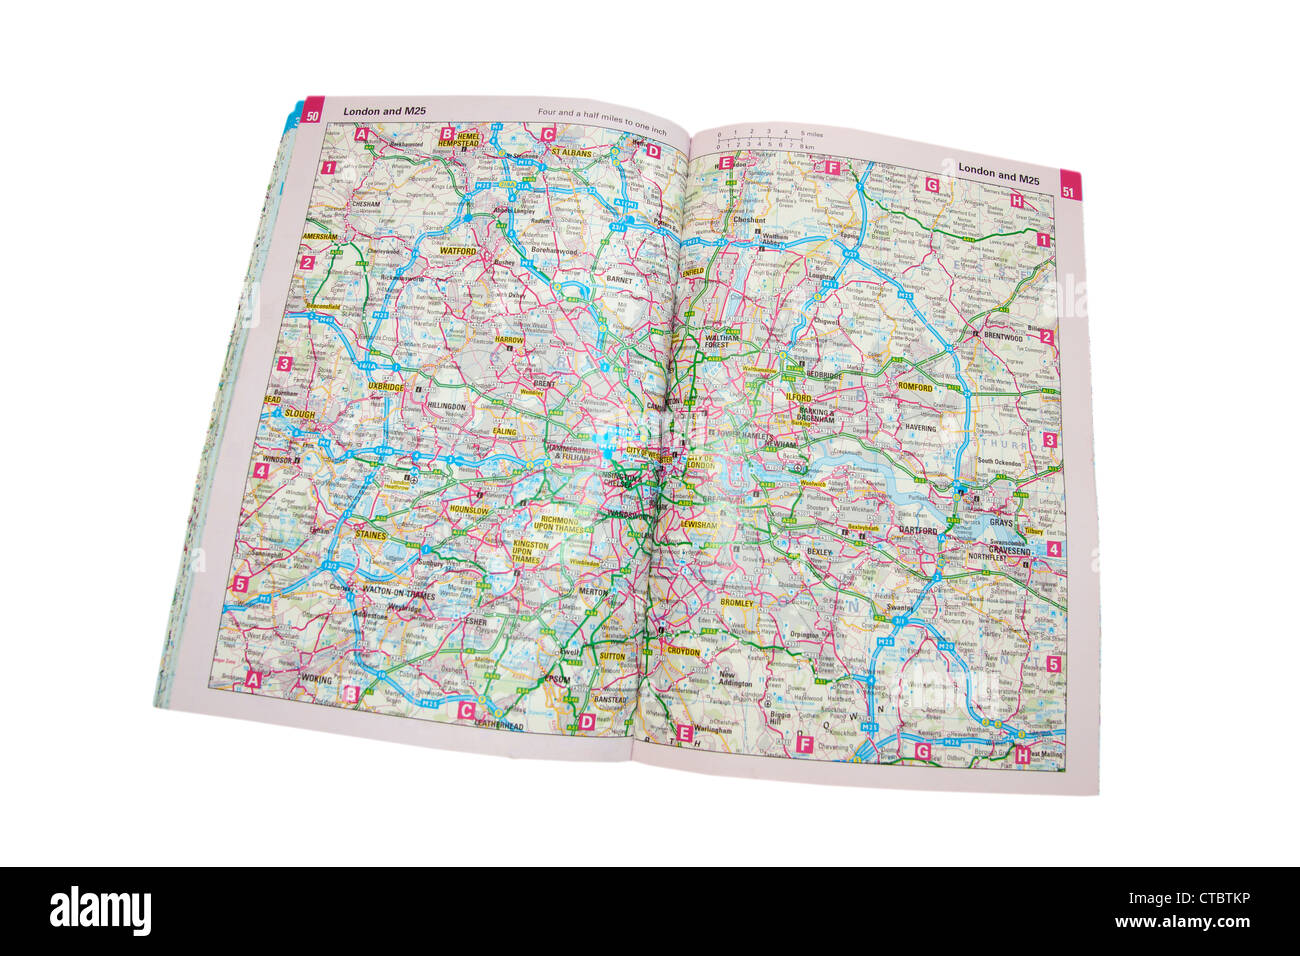 Map Of England Showing London.A Traditional Paper Map Maps Of England Showing The M25 London